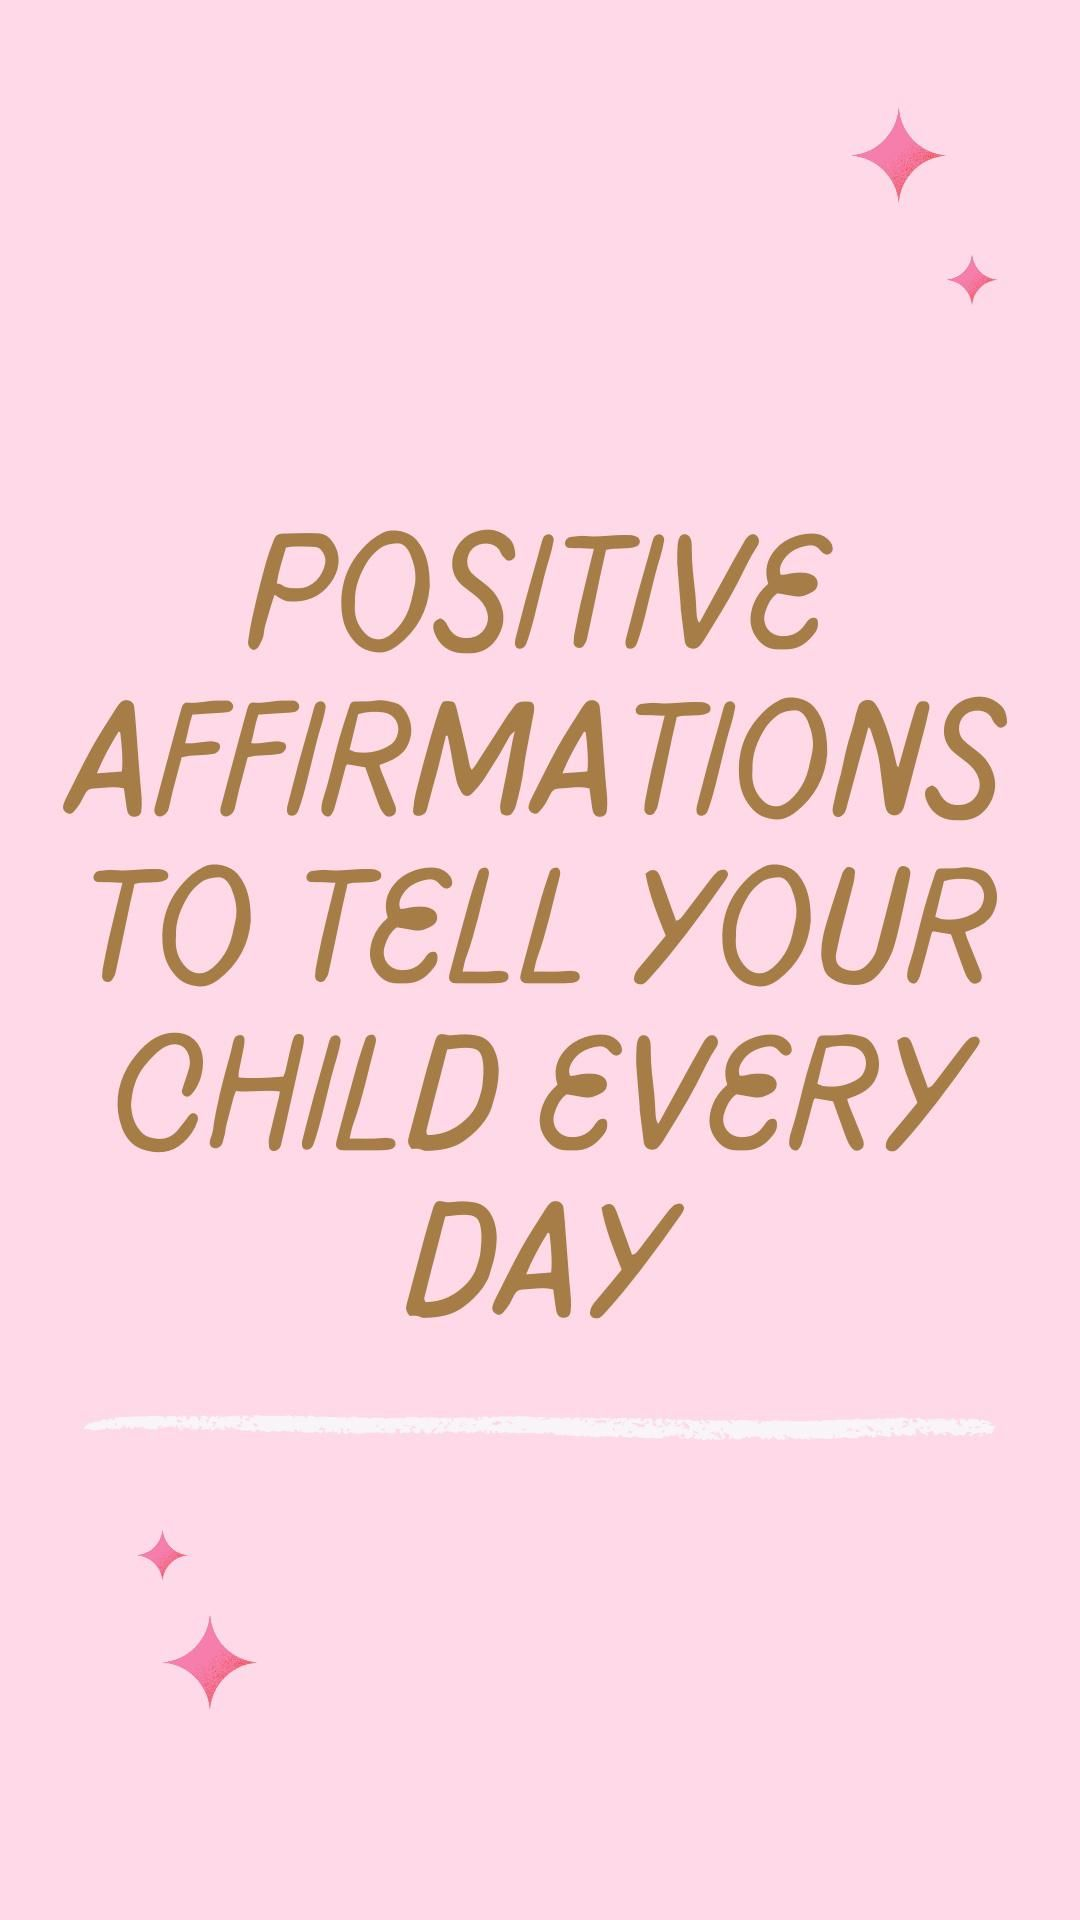 Positive affirmations to tell your children every day 💖